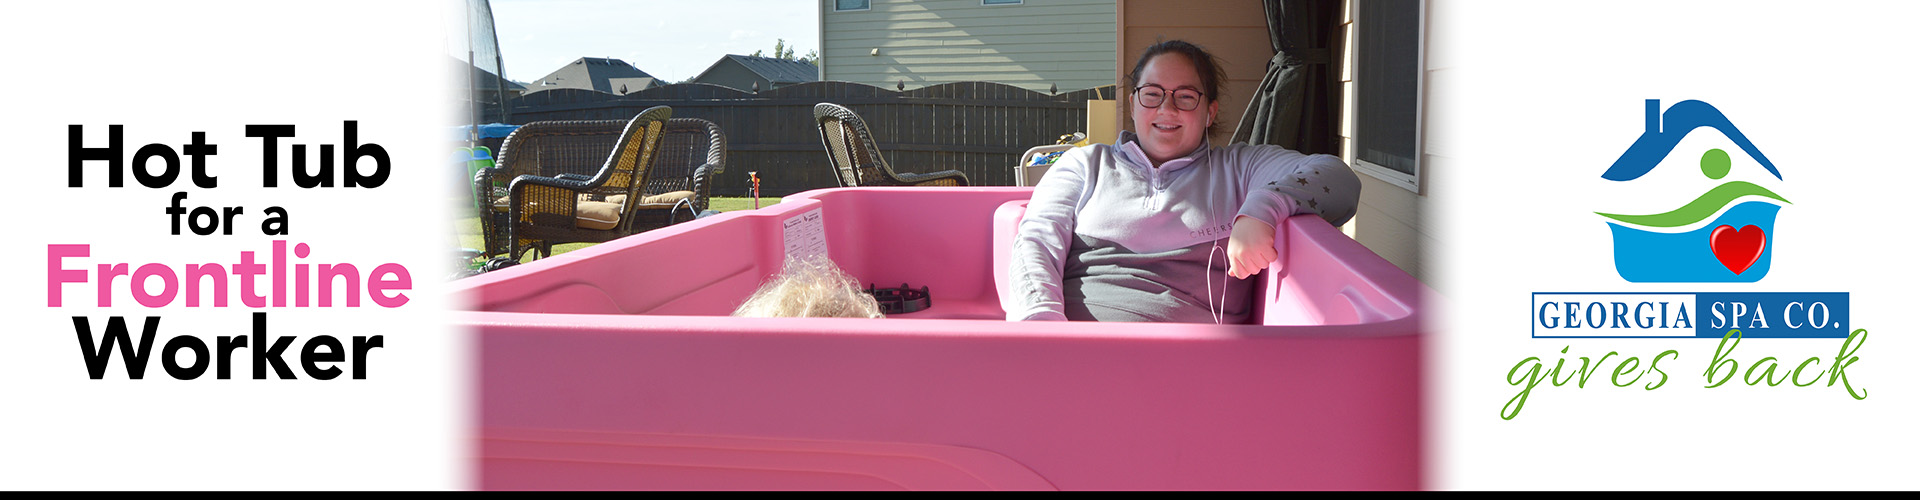 Hot Tub for a Frontline Worker Delivery